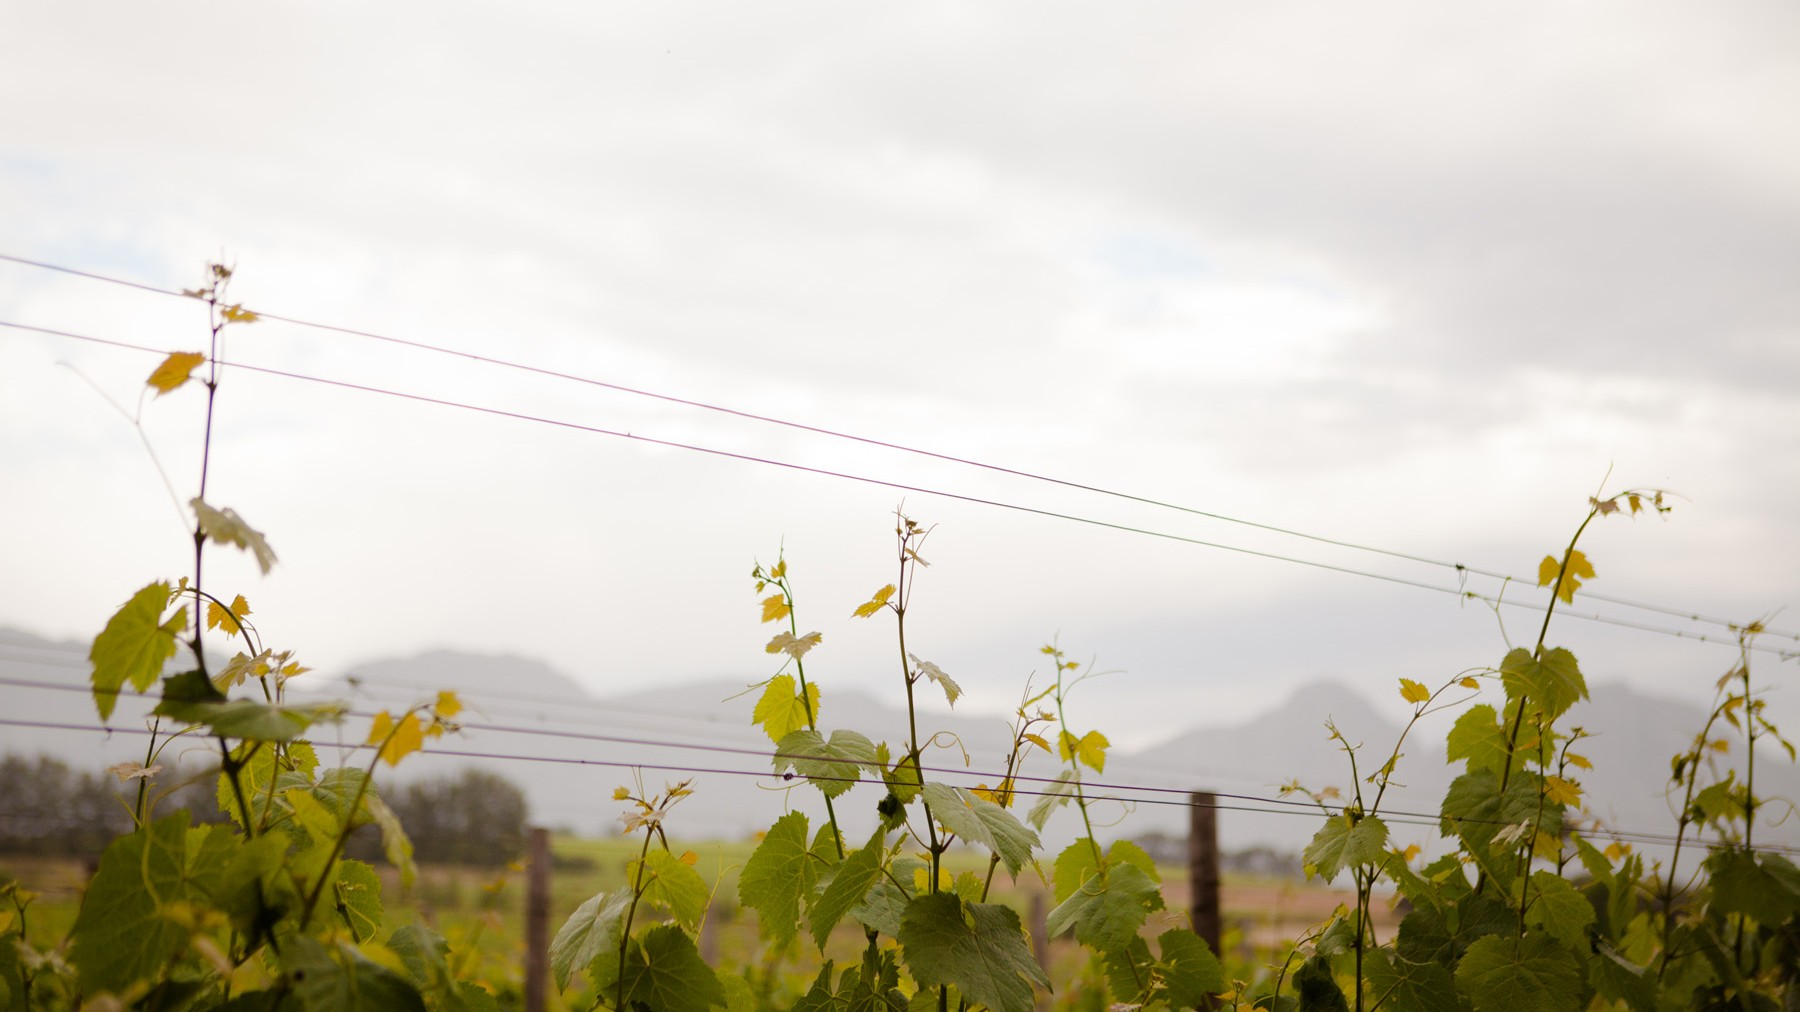 Grape plants at Audacia winery in Stellenbosch.